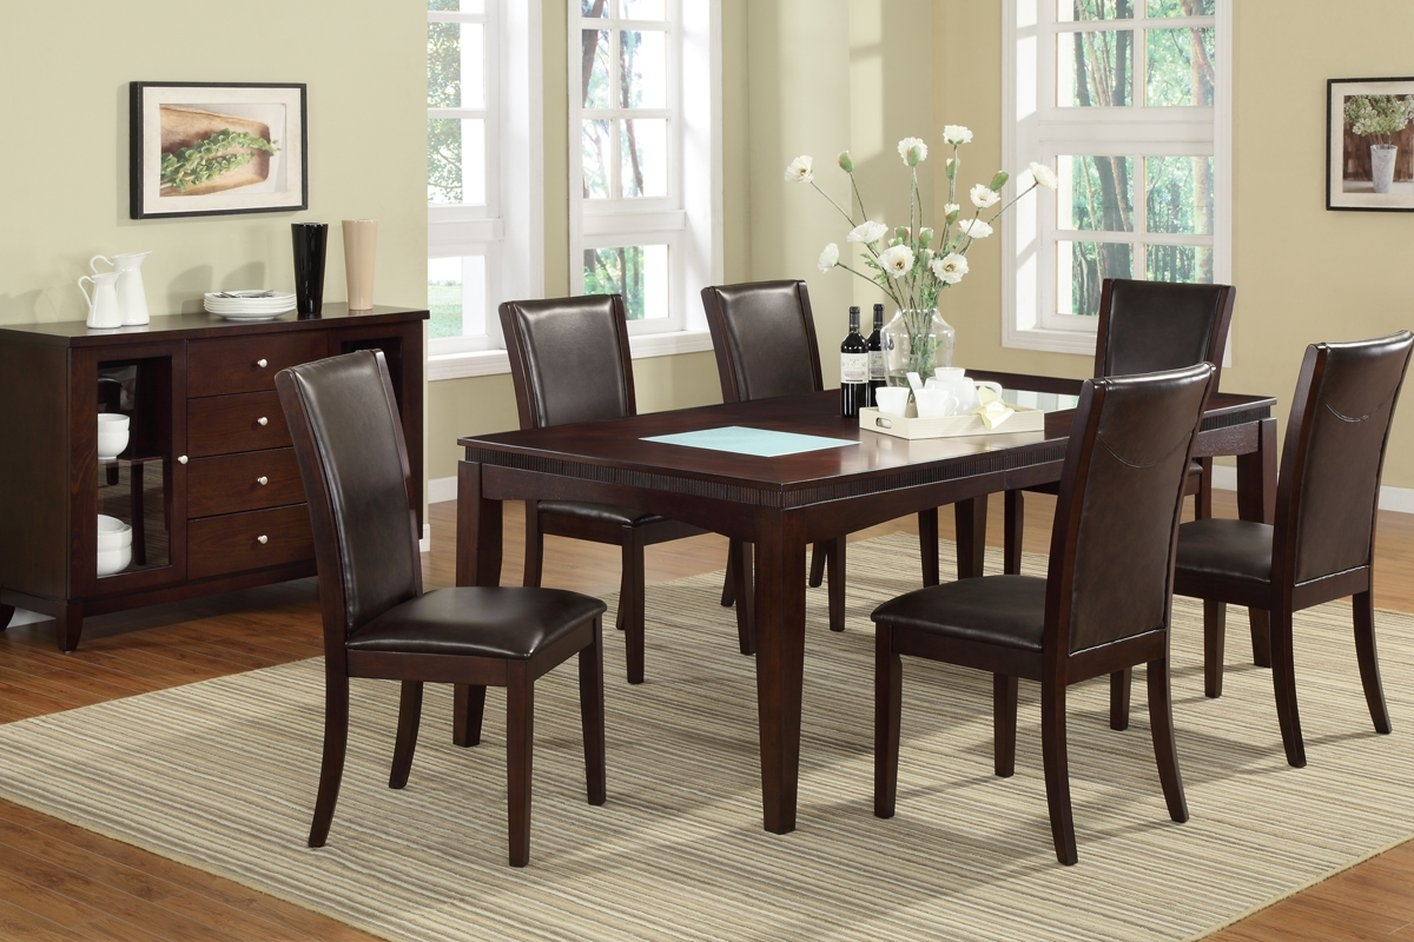 Brown Glass Dining Table – Steal A Sofa Furniture Outlet Los Angeles Ca With Regard To Sofa Chairs With Dining Table (View 10 of 10)